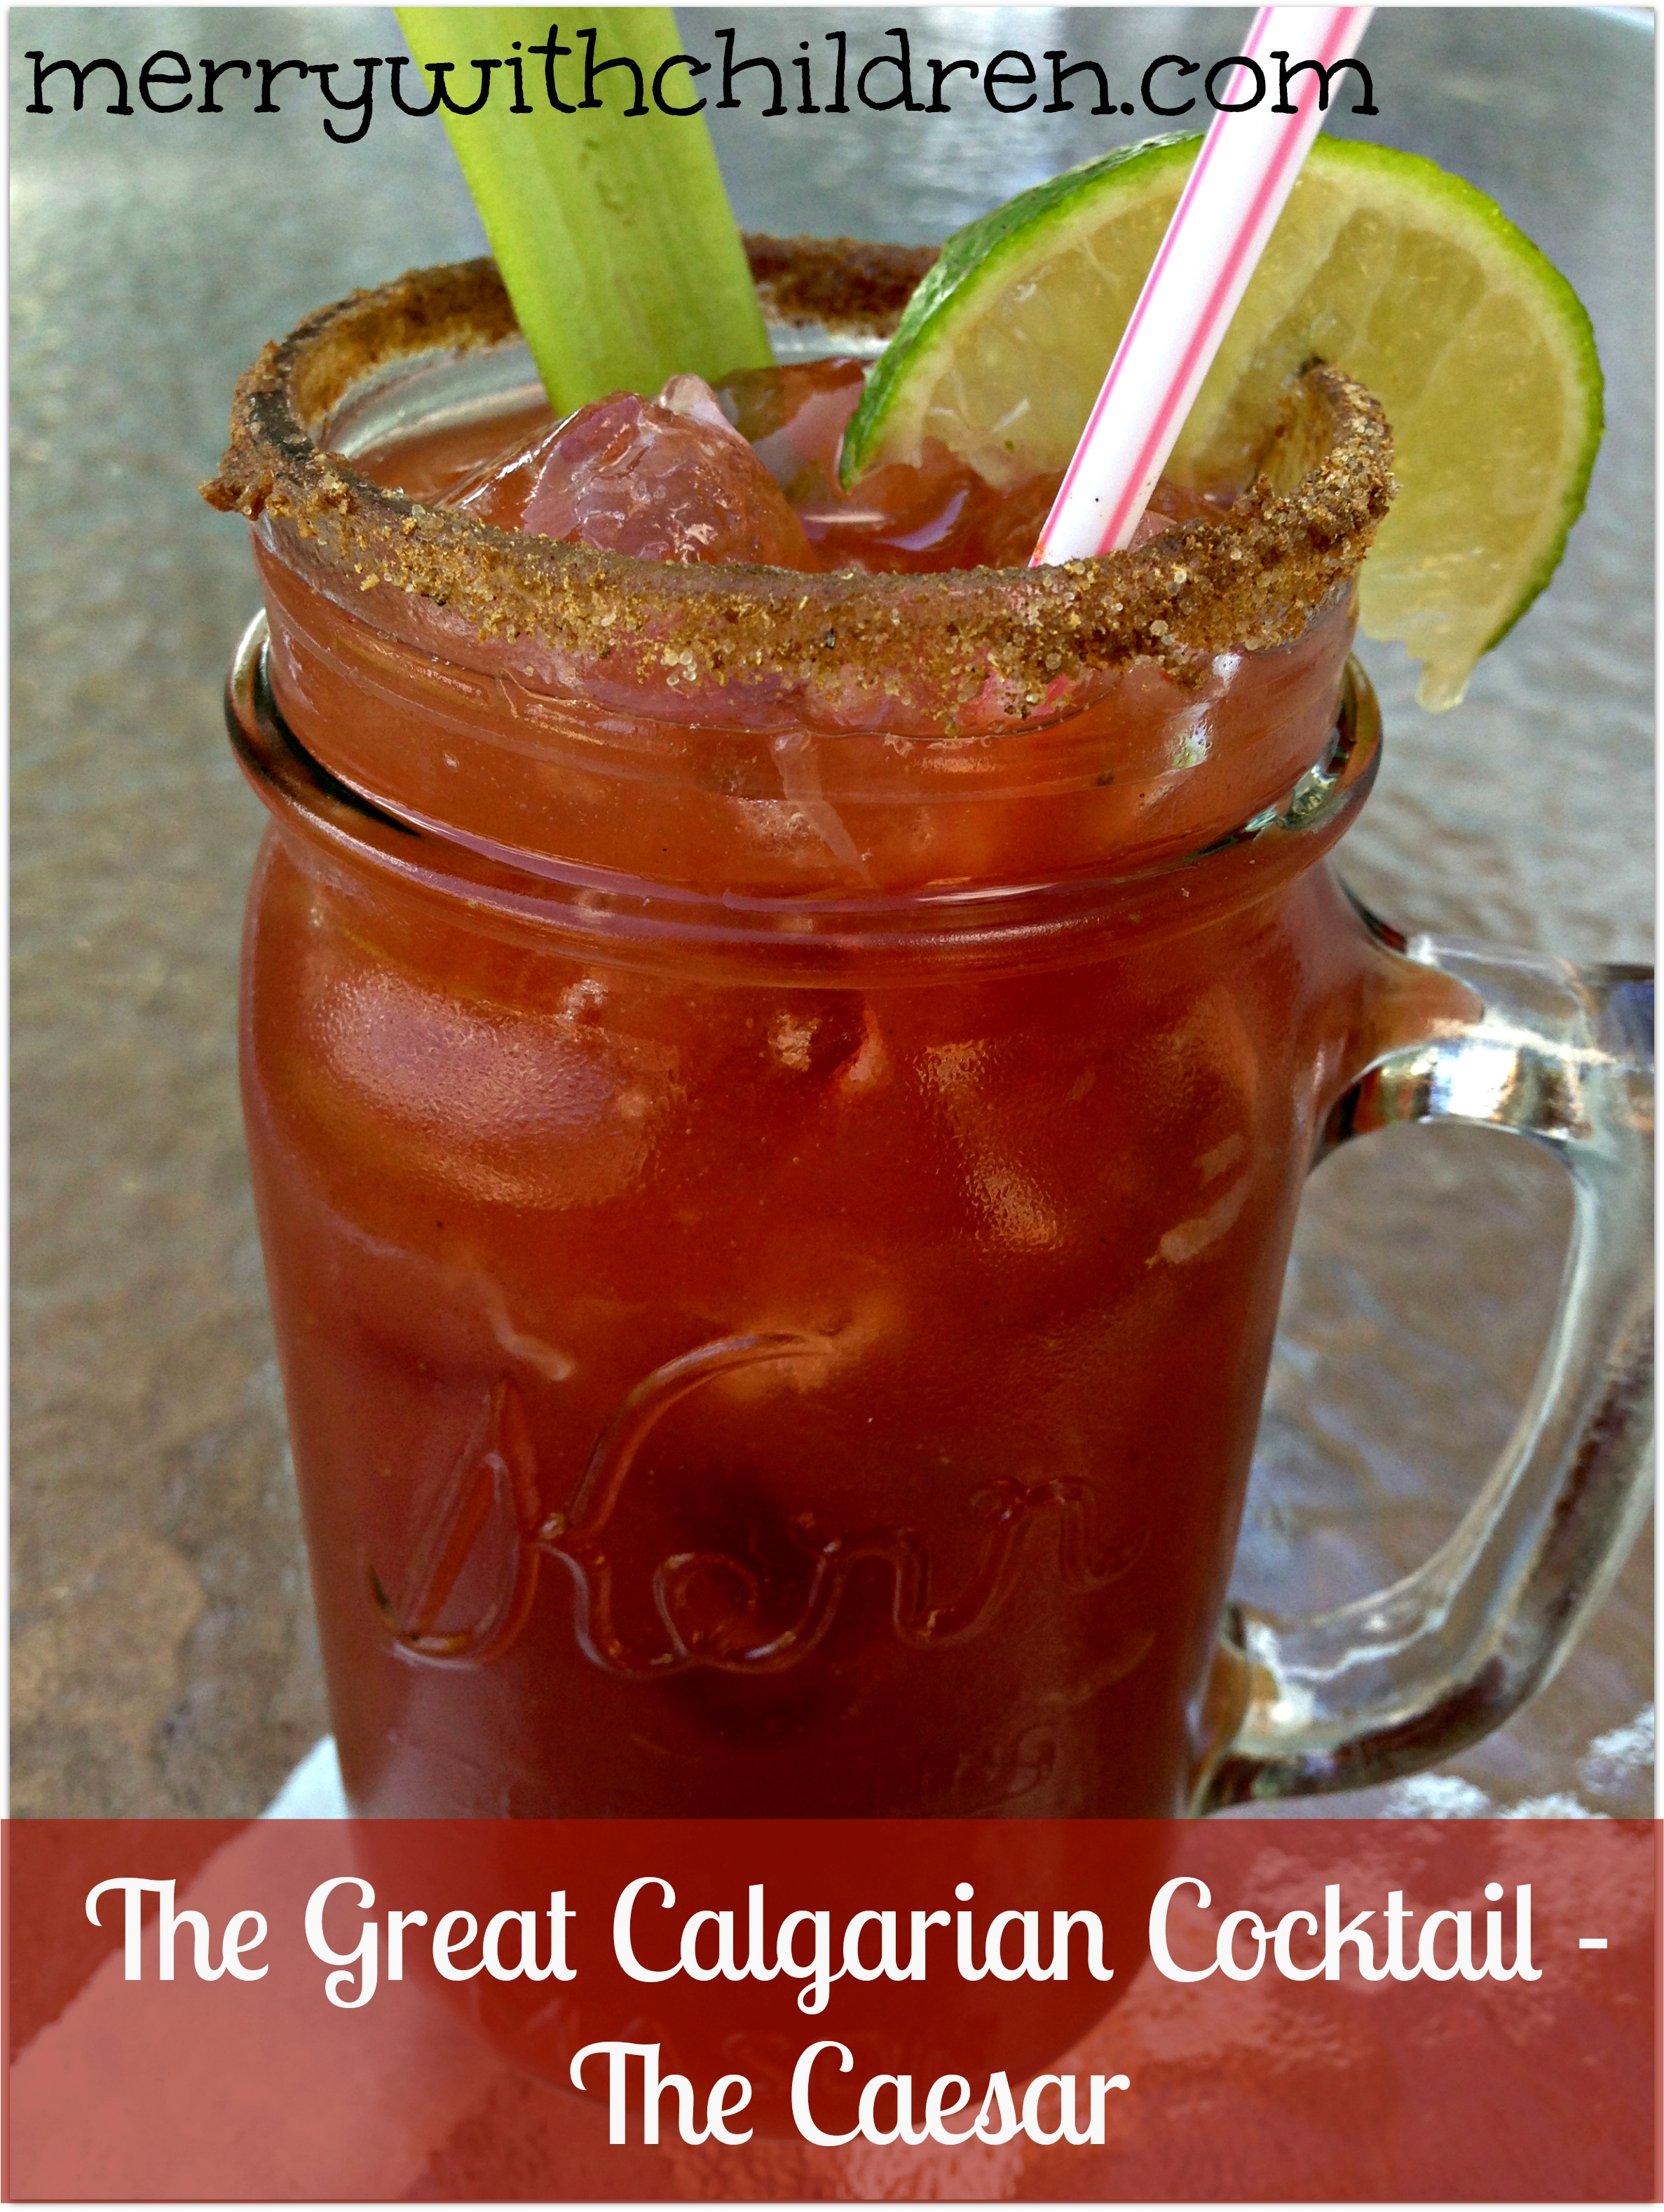 Canadian Cocktails - The Caesar (with